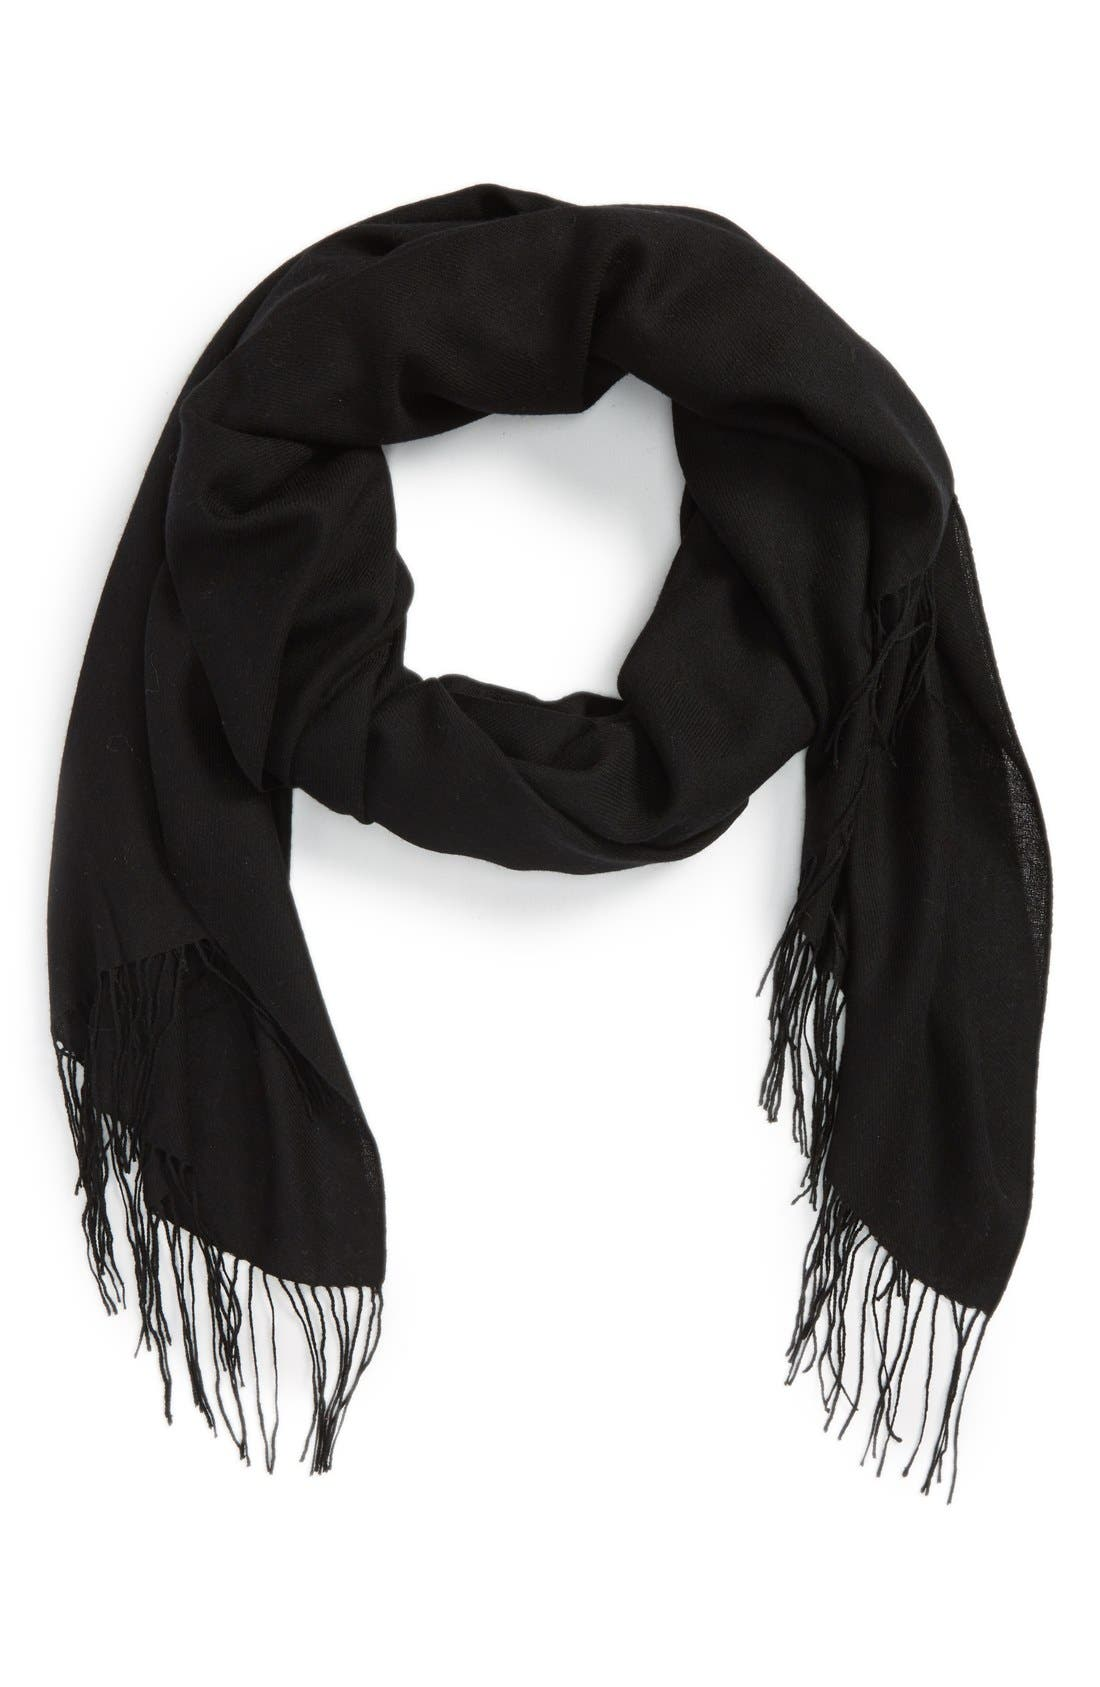 NORDSTROM, Tissue Weight Wool & Cashmere Scarf, Alternate thumbnail 2, color, BLACK